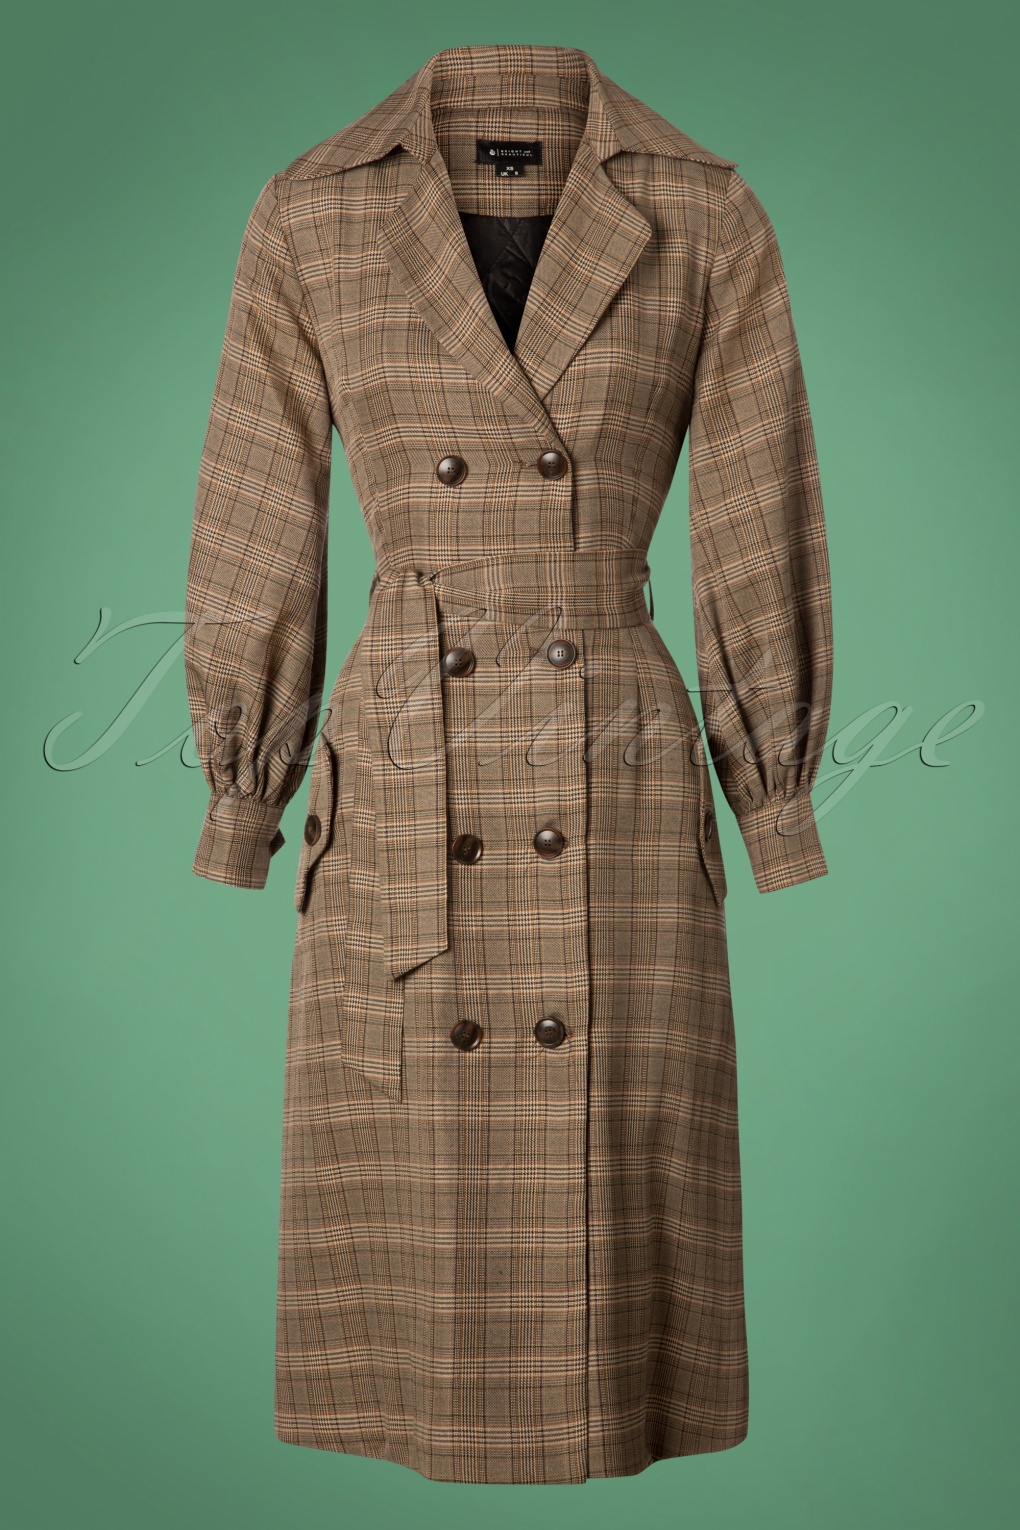 1930s Style Coats, Jackets | Art Deco Outerwear 70s Harlow Tweed Coat in Brown £53.99 AT vintagedancer.com